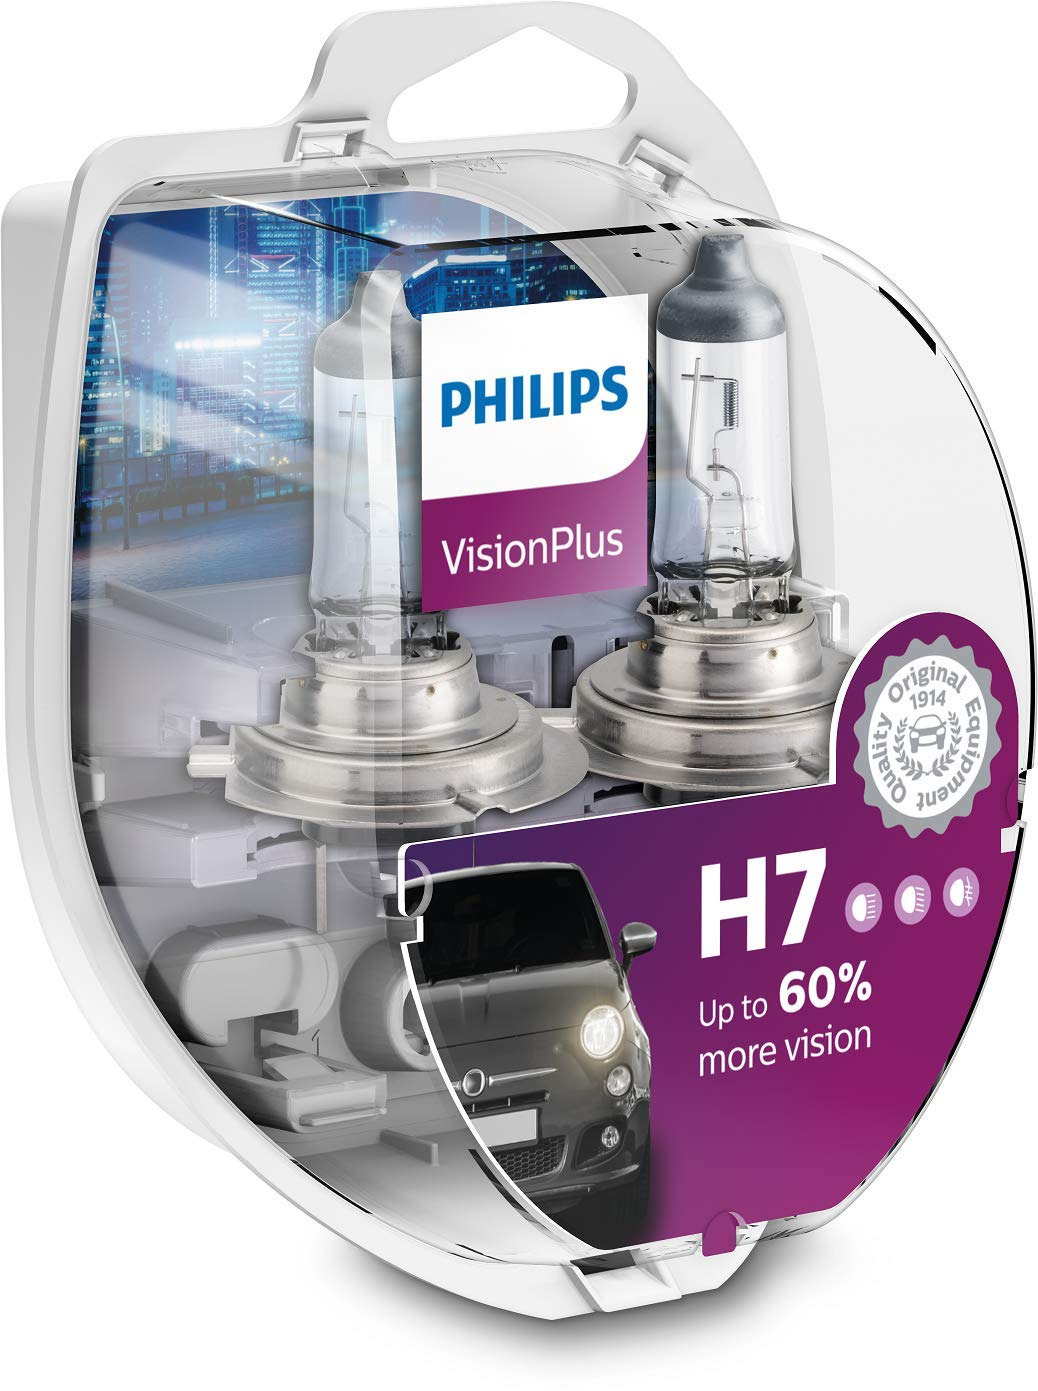 Philips 12972VPS2 VisionPlus +60% H7 Scheinwerferlampe 12972VPS2, 2er Kit von Philips automotive lighting